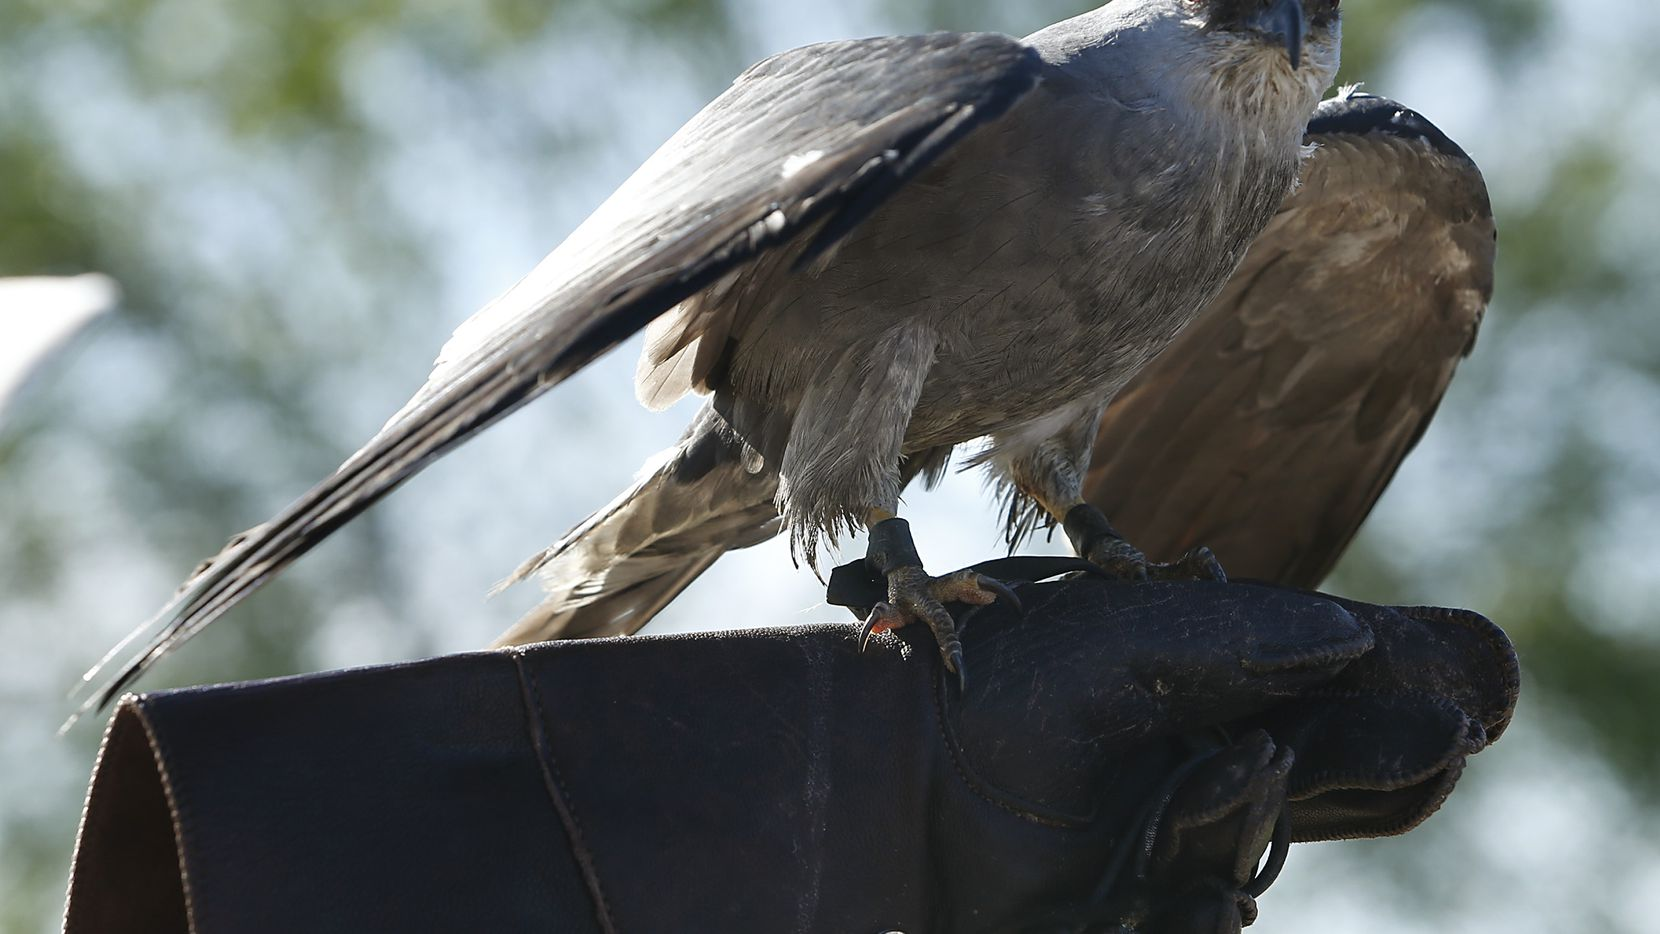 A Mississippi kite is pictured in this file photo. A Southlake neighborhood is being targeted by a pair of similar birds likely protecting their nest.